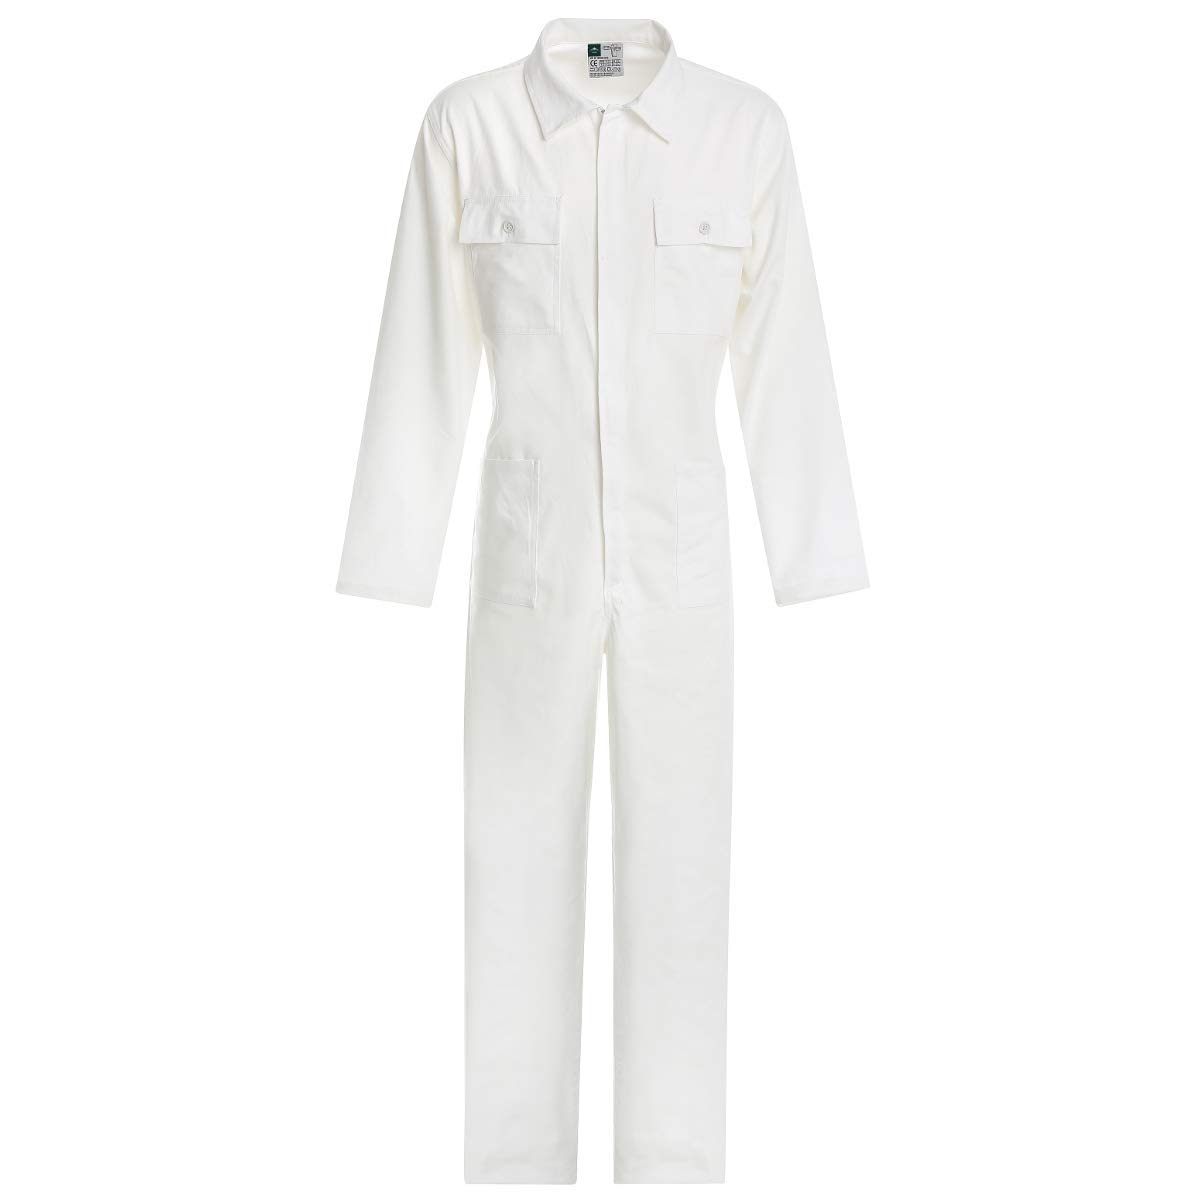 WORK AND STYLE Overall Linie Bianco